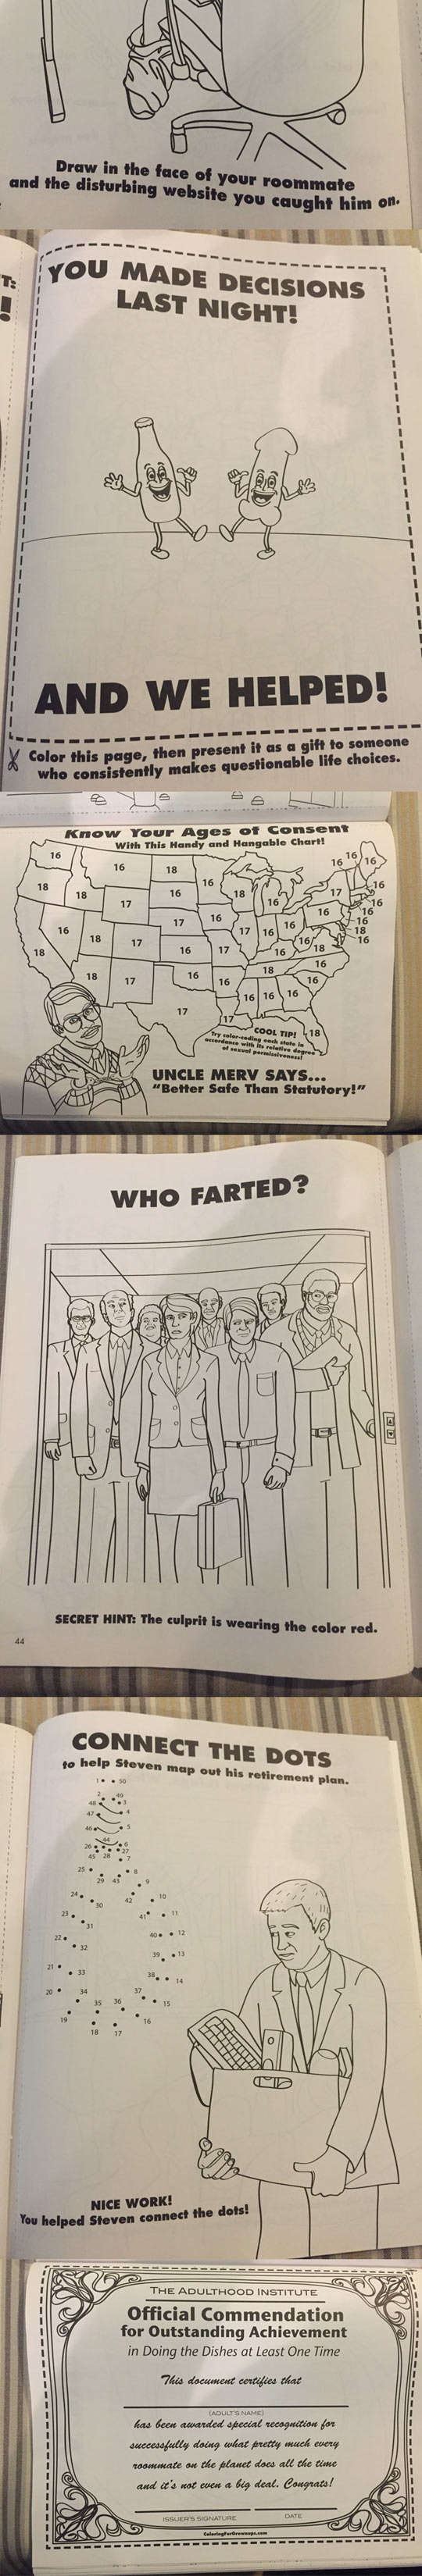 funny-coloring-book-for-adults-police-games